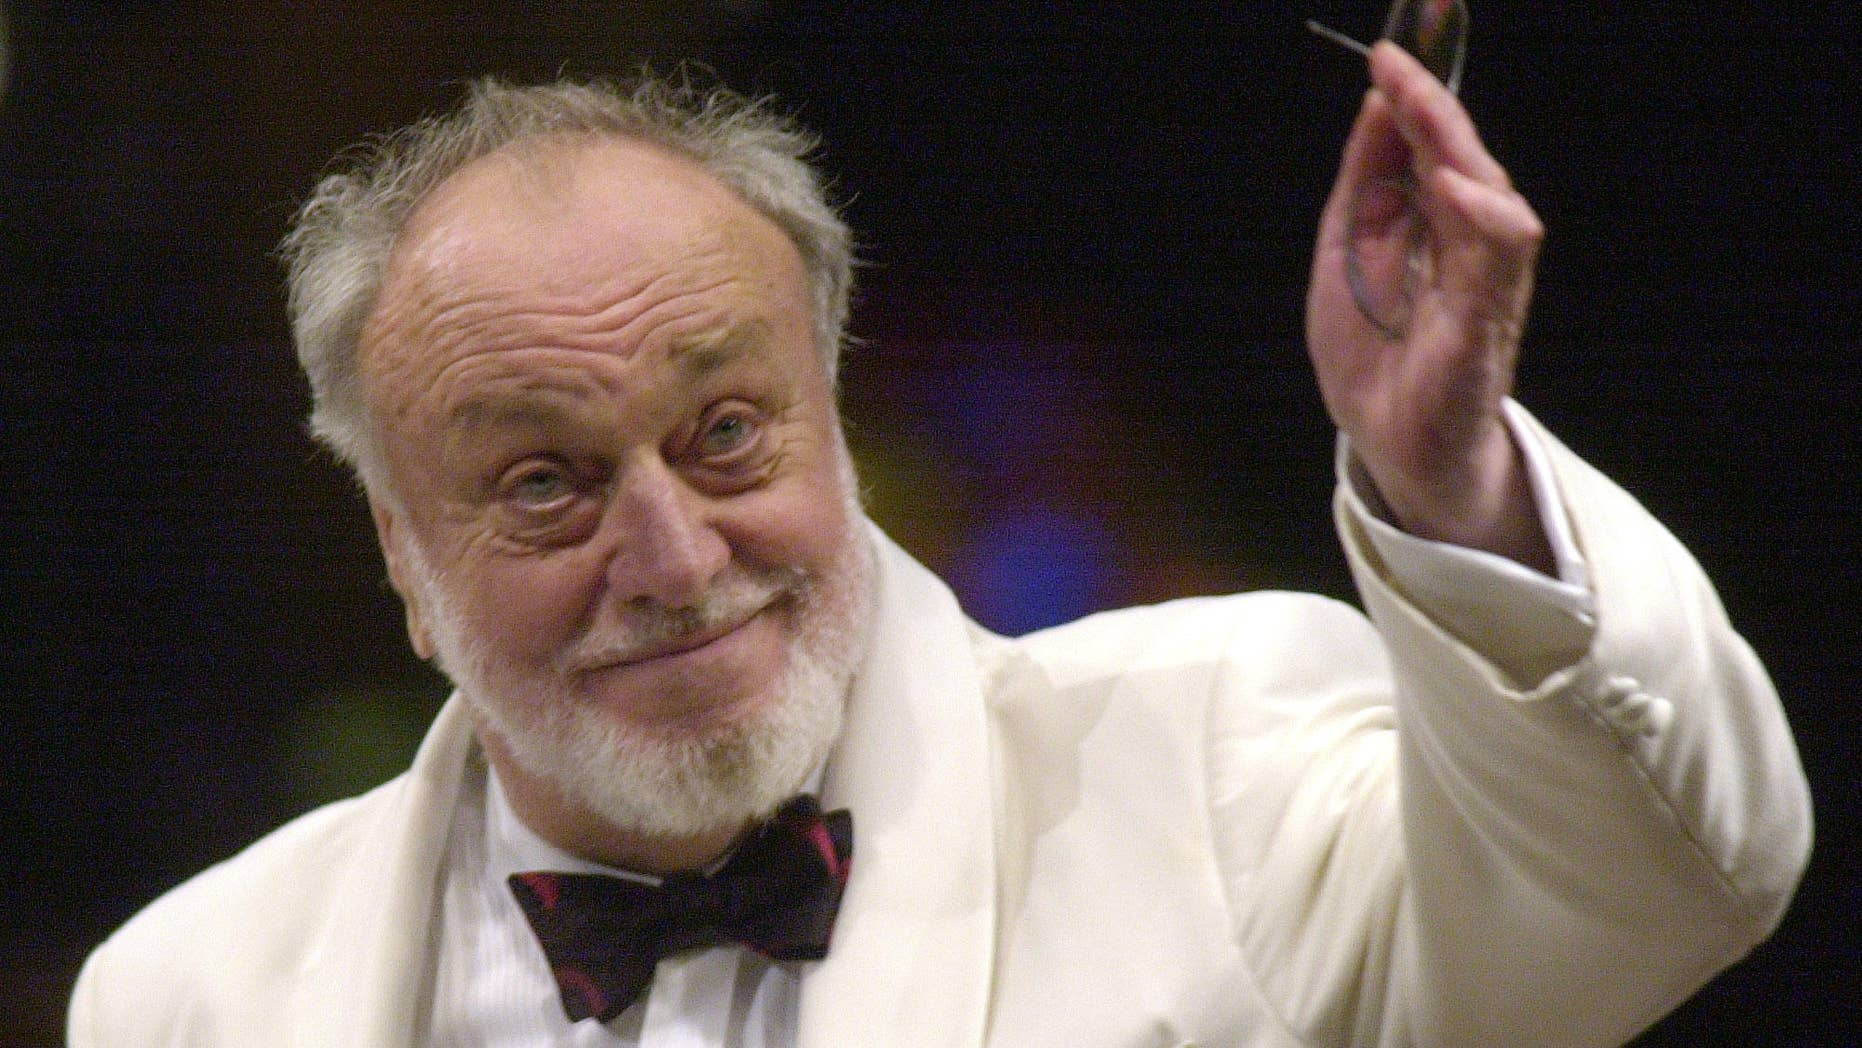 July 18, 2002. Kurt Masur, music director of the New York Philharmonic, gives his final New York performance as director at Lincoln Center.